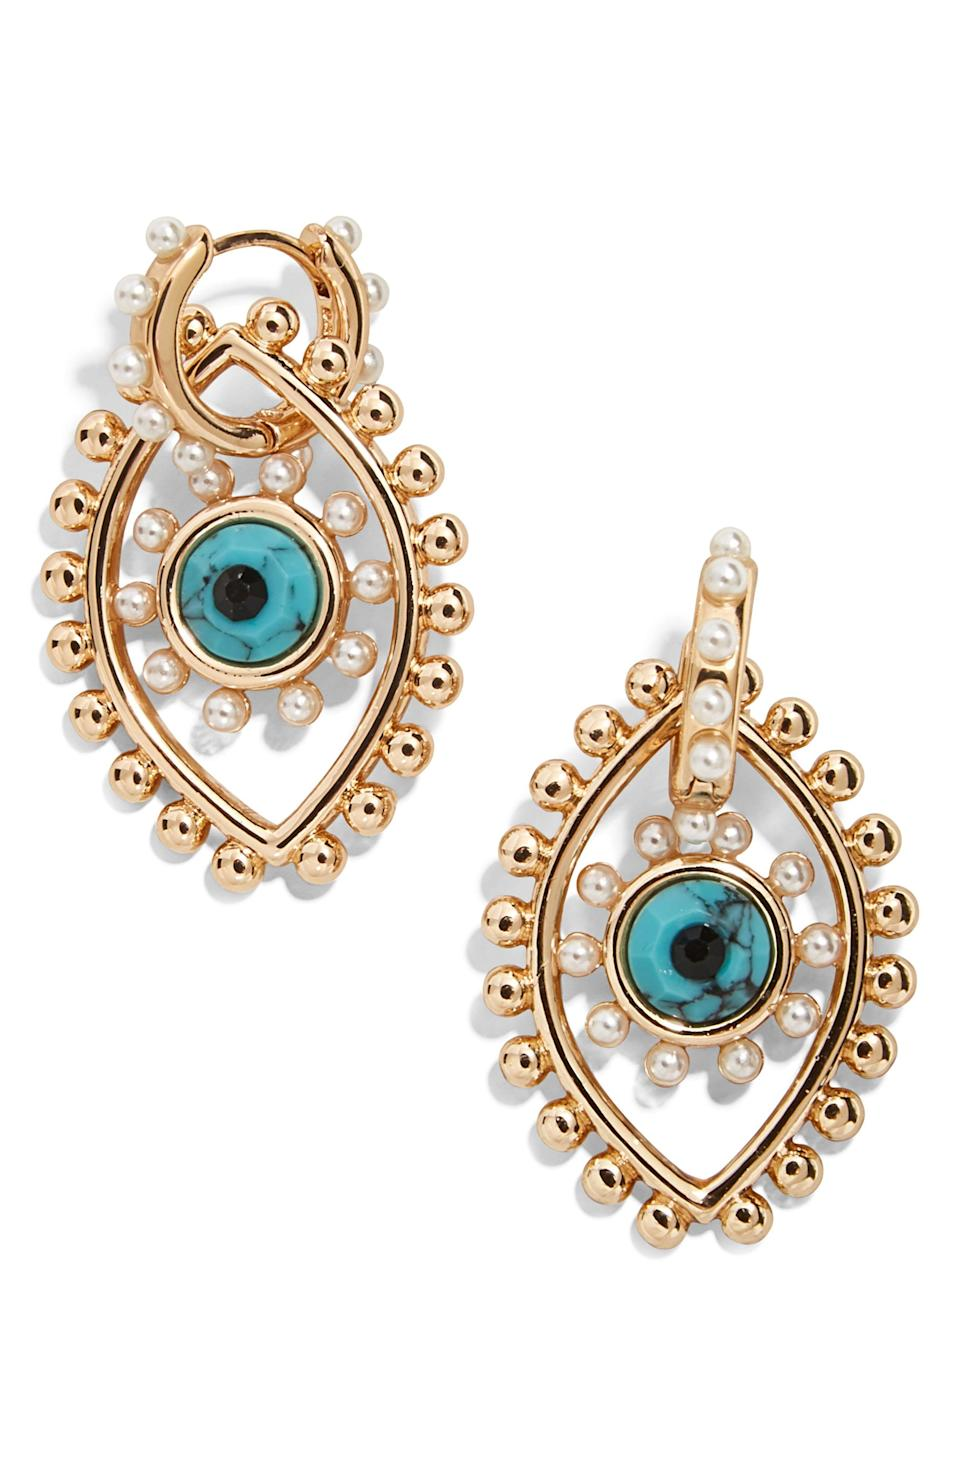 """<p><strong>BAUBLEBAR</strong></p><p>nordstrom.com</p><p><strong>$22.80</strong></p><p><a href=""""https://go.redirectingat.com?id=74968X1596630&url=https%3A%2F%2Fwww.nordstrom.com%2Fs%2Fbaublebar-panon-evil-eye-drop-earrings%2F5485477&sref=https%3A%2F%2Fwww.elle.com%2Ffashion%2Fshopping%2Fg34741930%2Fnordstrom-12-days-of-cyber-savings-sale%2F"""" rel=""""nofollow noopener"""" target=""""_blank"""" data-ylk=""""slk:Shop Now"""" class=""""link rapid-noclick-resp"""">Shop Now</a></p>"""